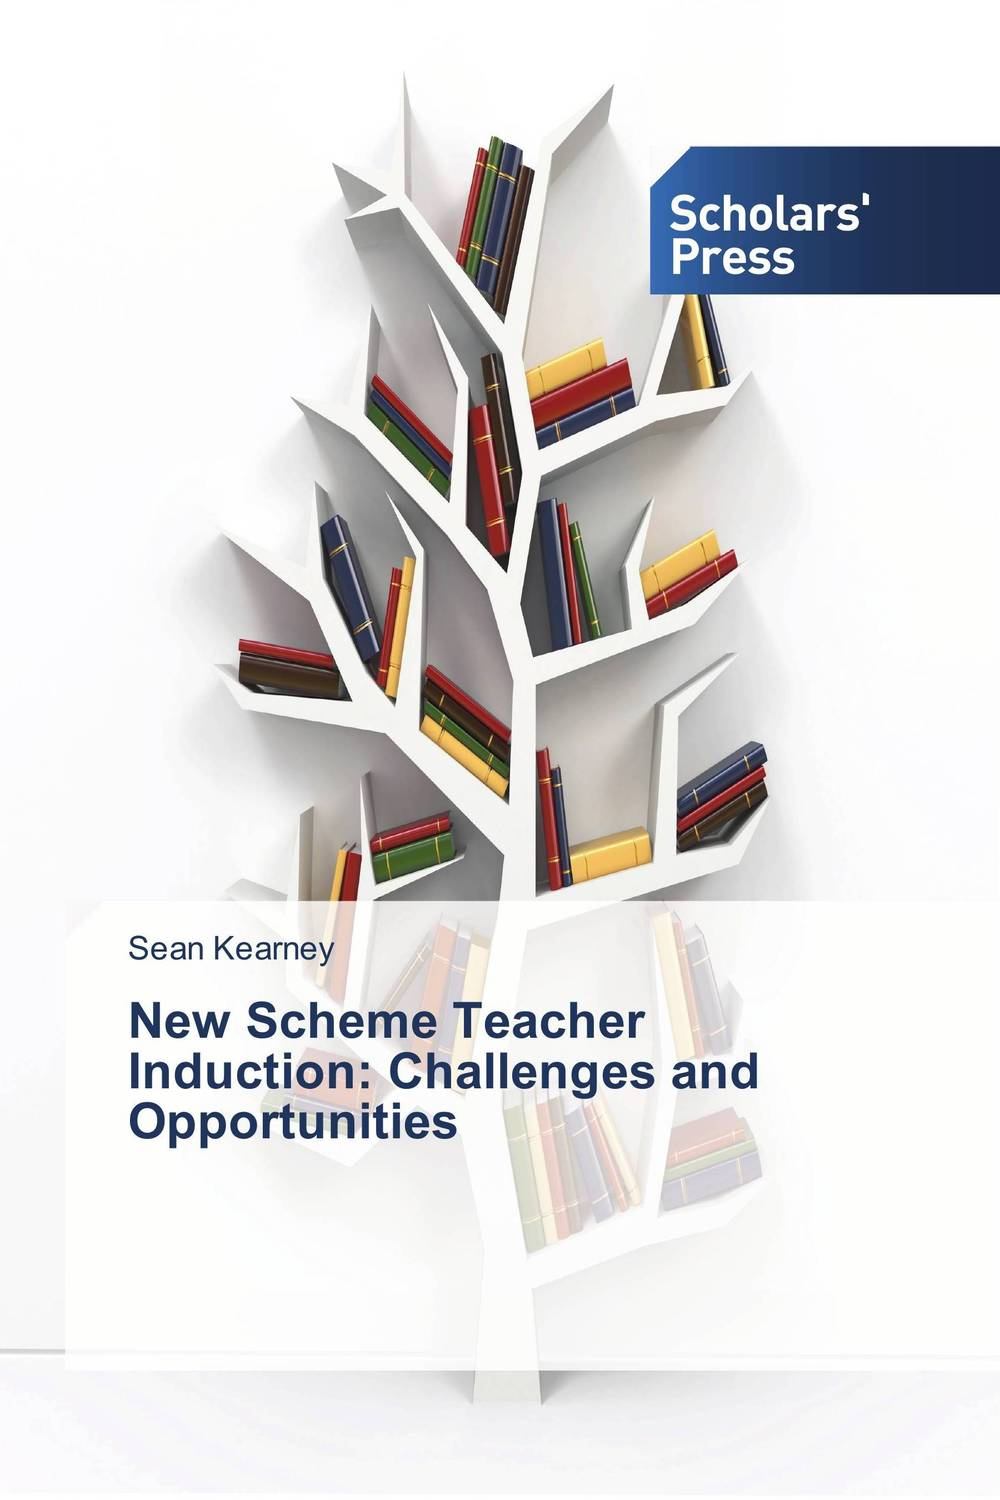 New Scheme Teacher Induction: Challenges and Opportunities challenges facing beginning teachers in induction and orientation